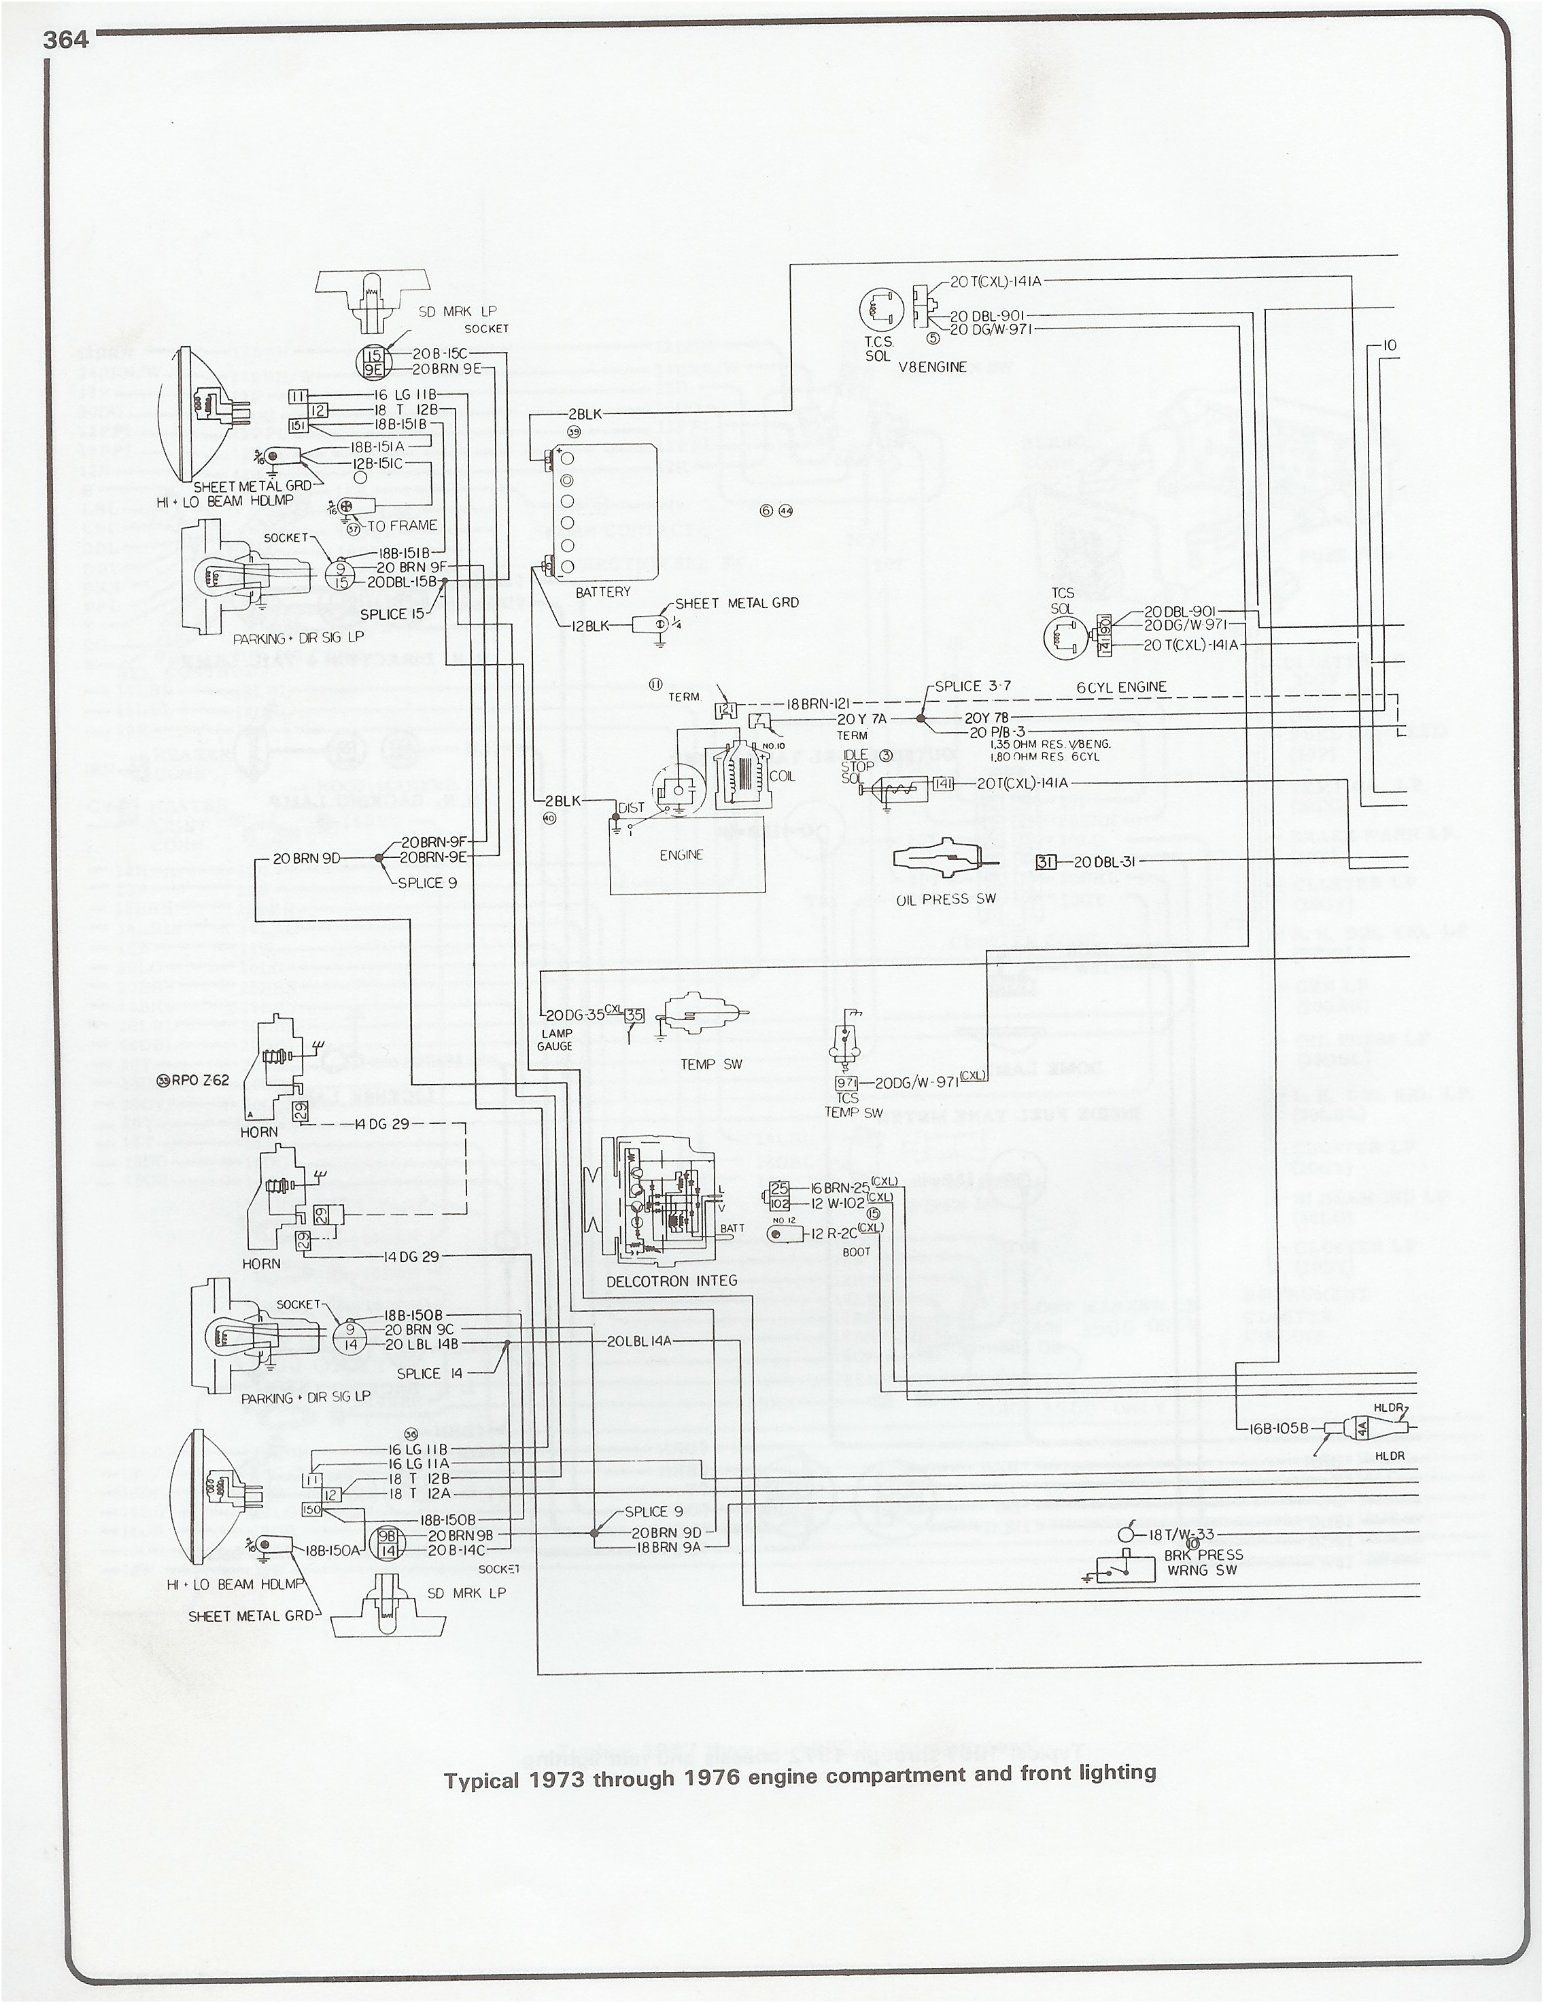 small resolution of 1975 gm coil wiring wiring diagram 1975 gm coil wiring